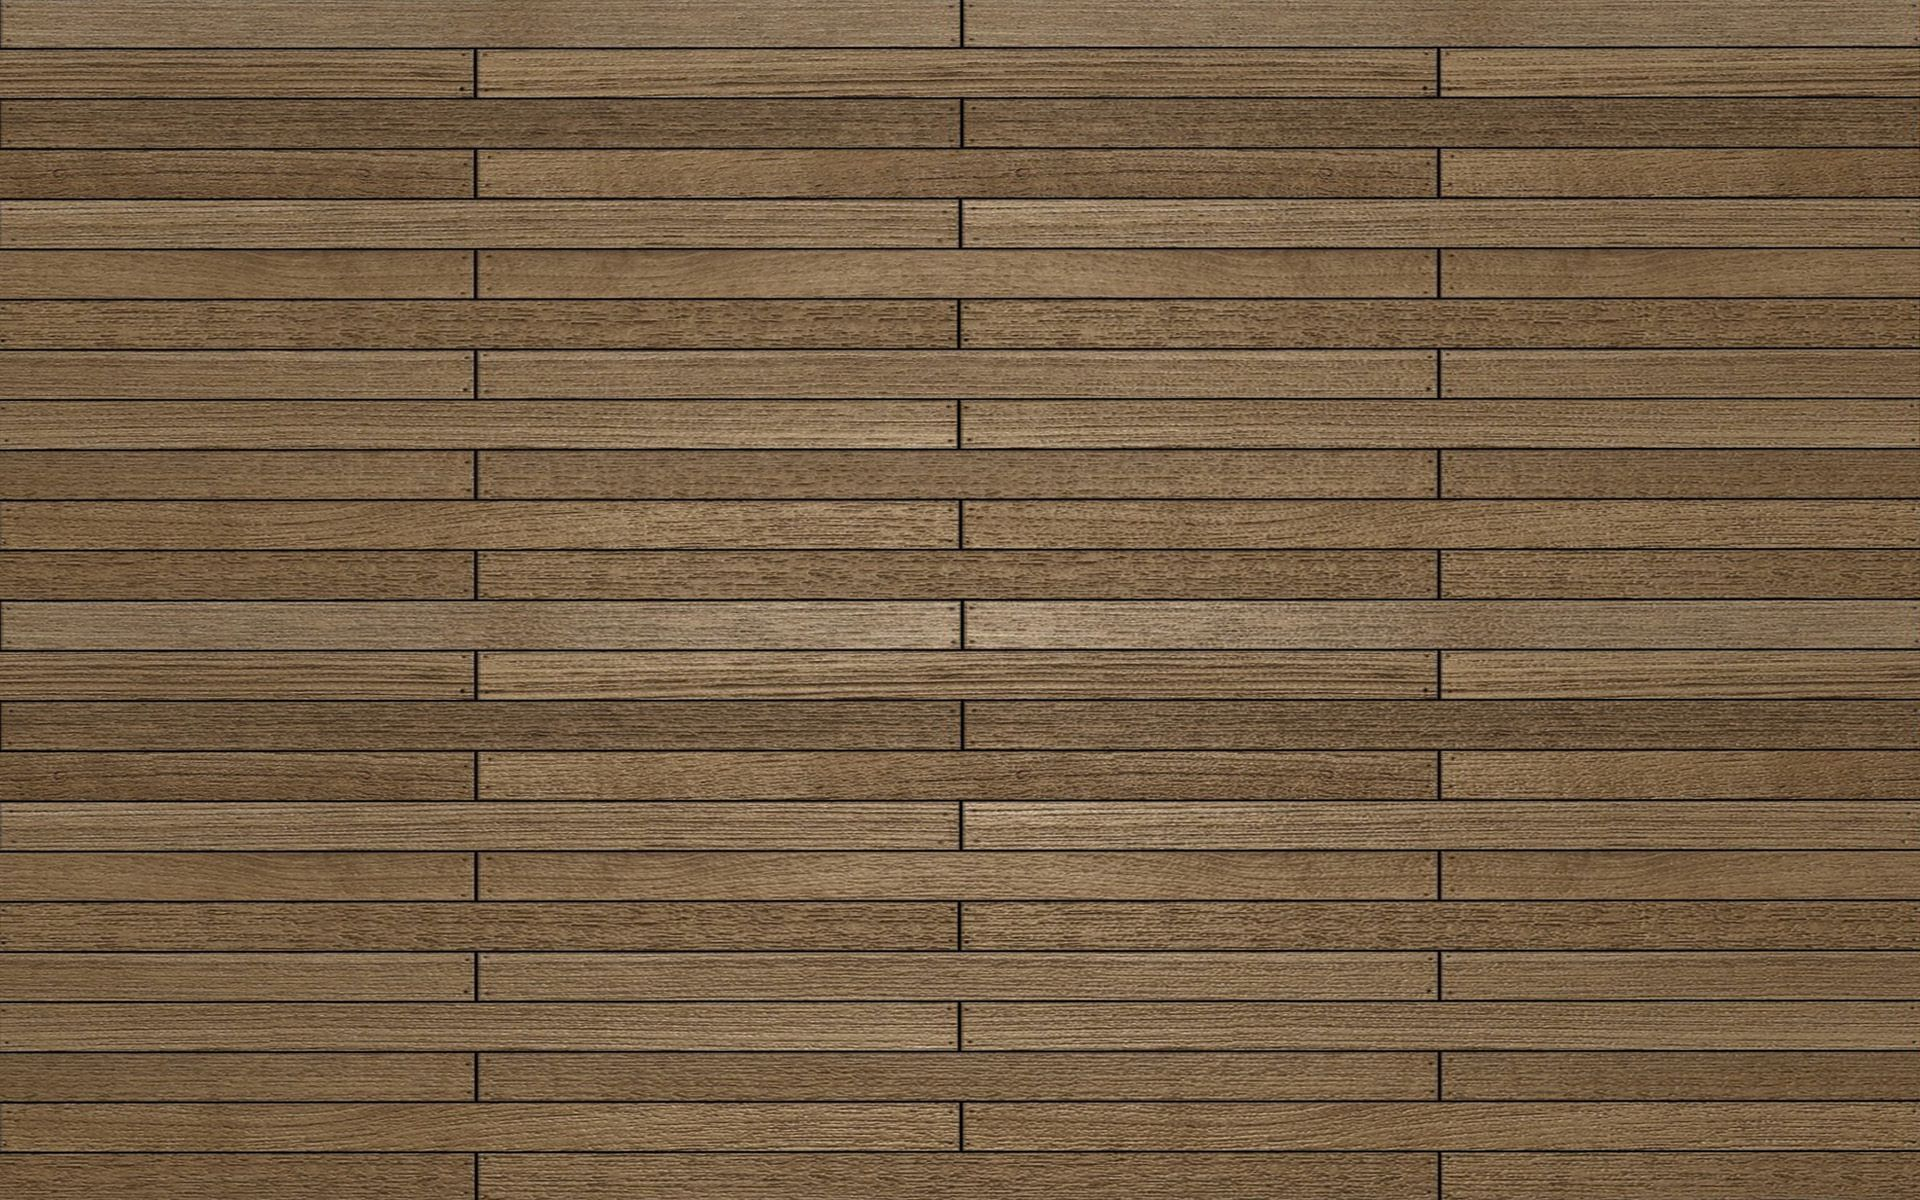 Wood flooring background awesome 31006 material texture and pattern pinterest wood floor Wood tile flooring